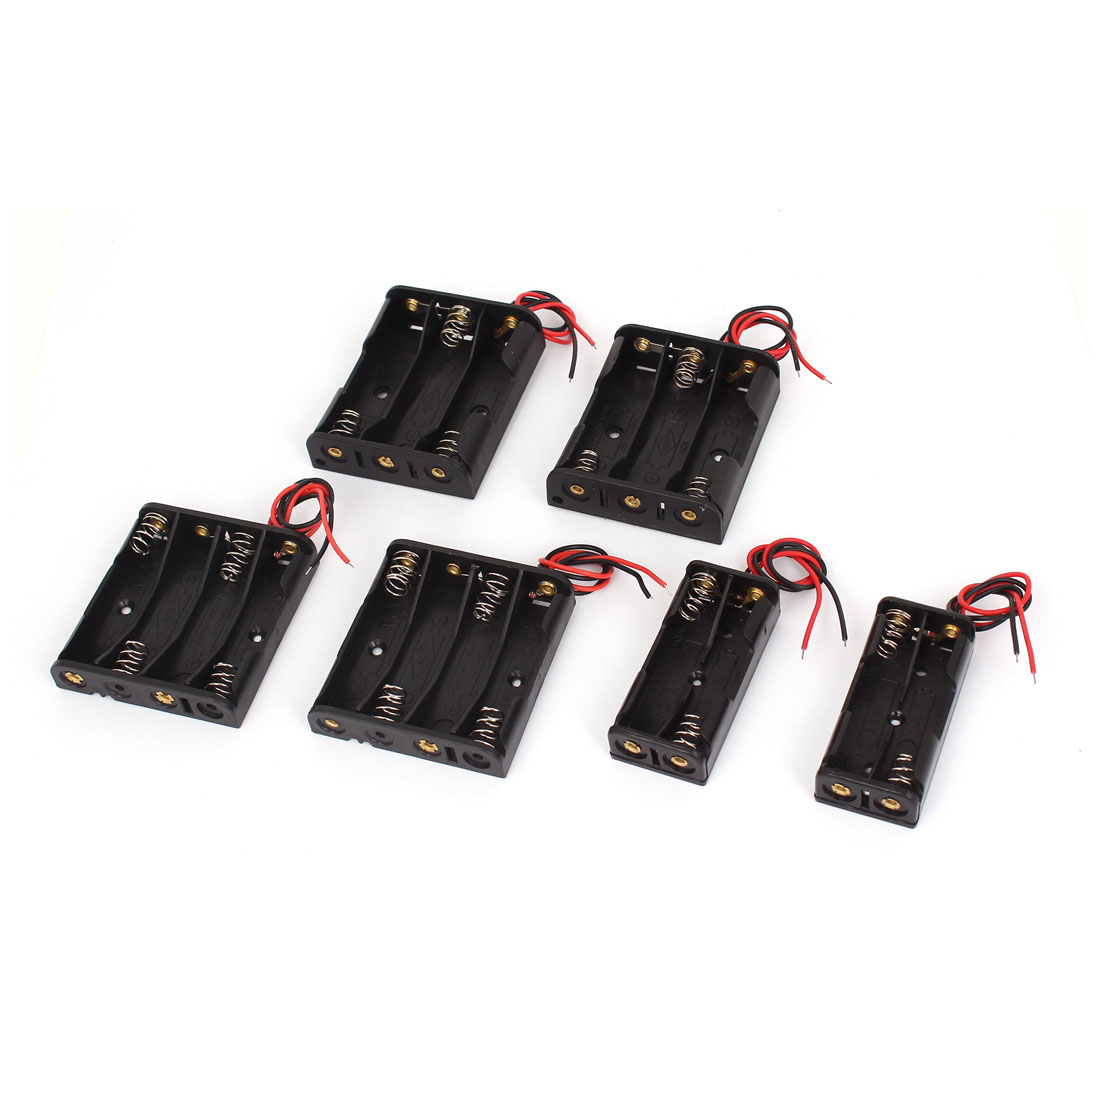 6pcs Black Wire Lead Battery Holder Box Case Set Kit for 1.5V AA AAA Batteries